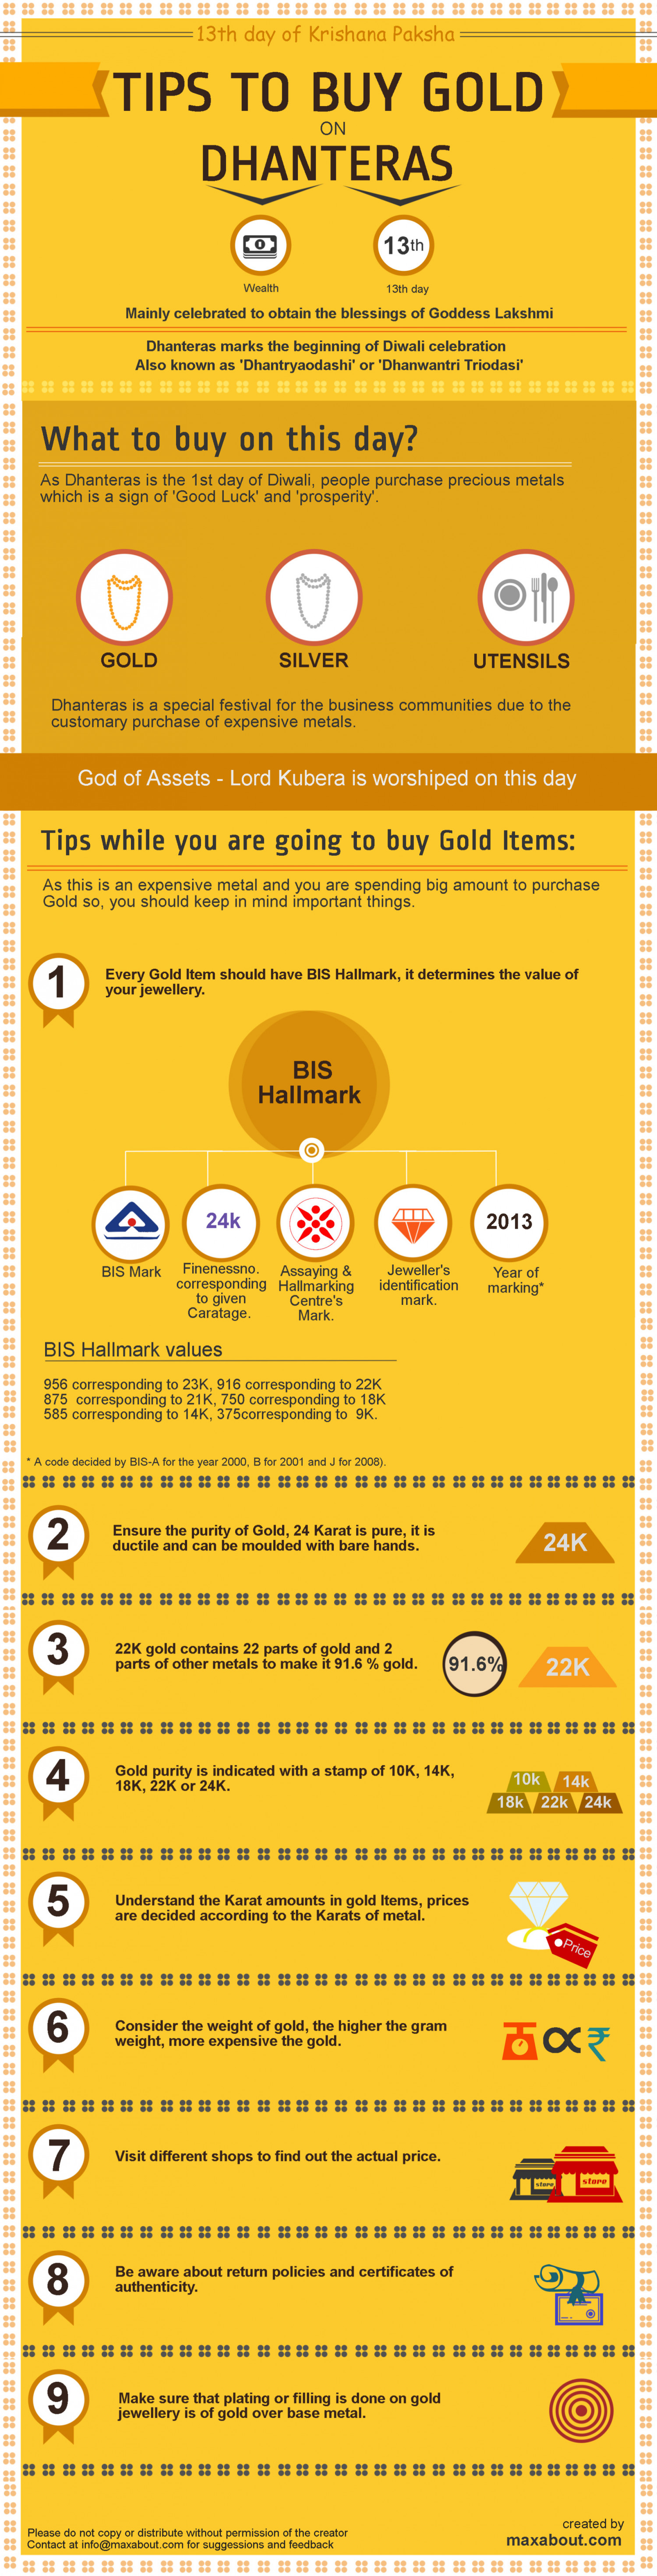 Tips to Buy Gold on Dhanteras Infographic